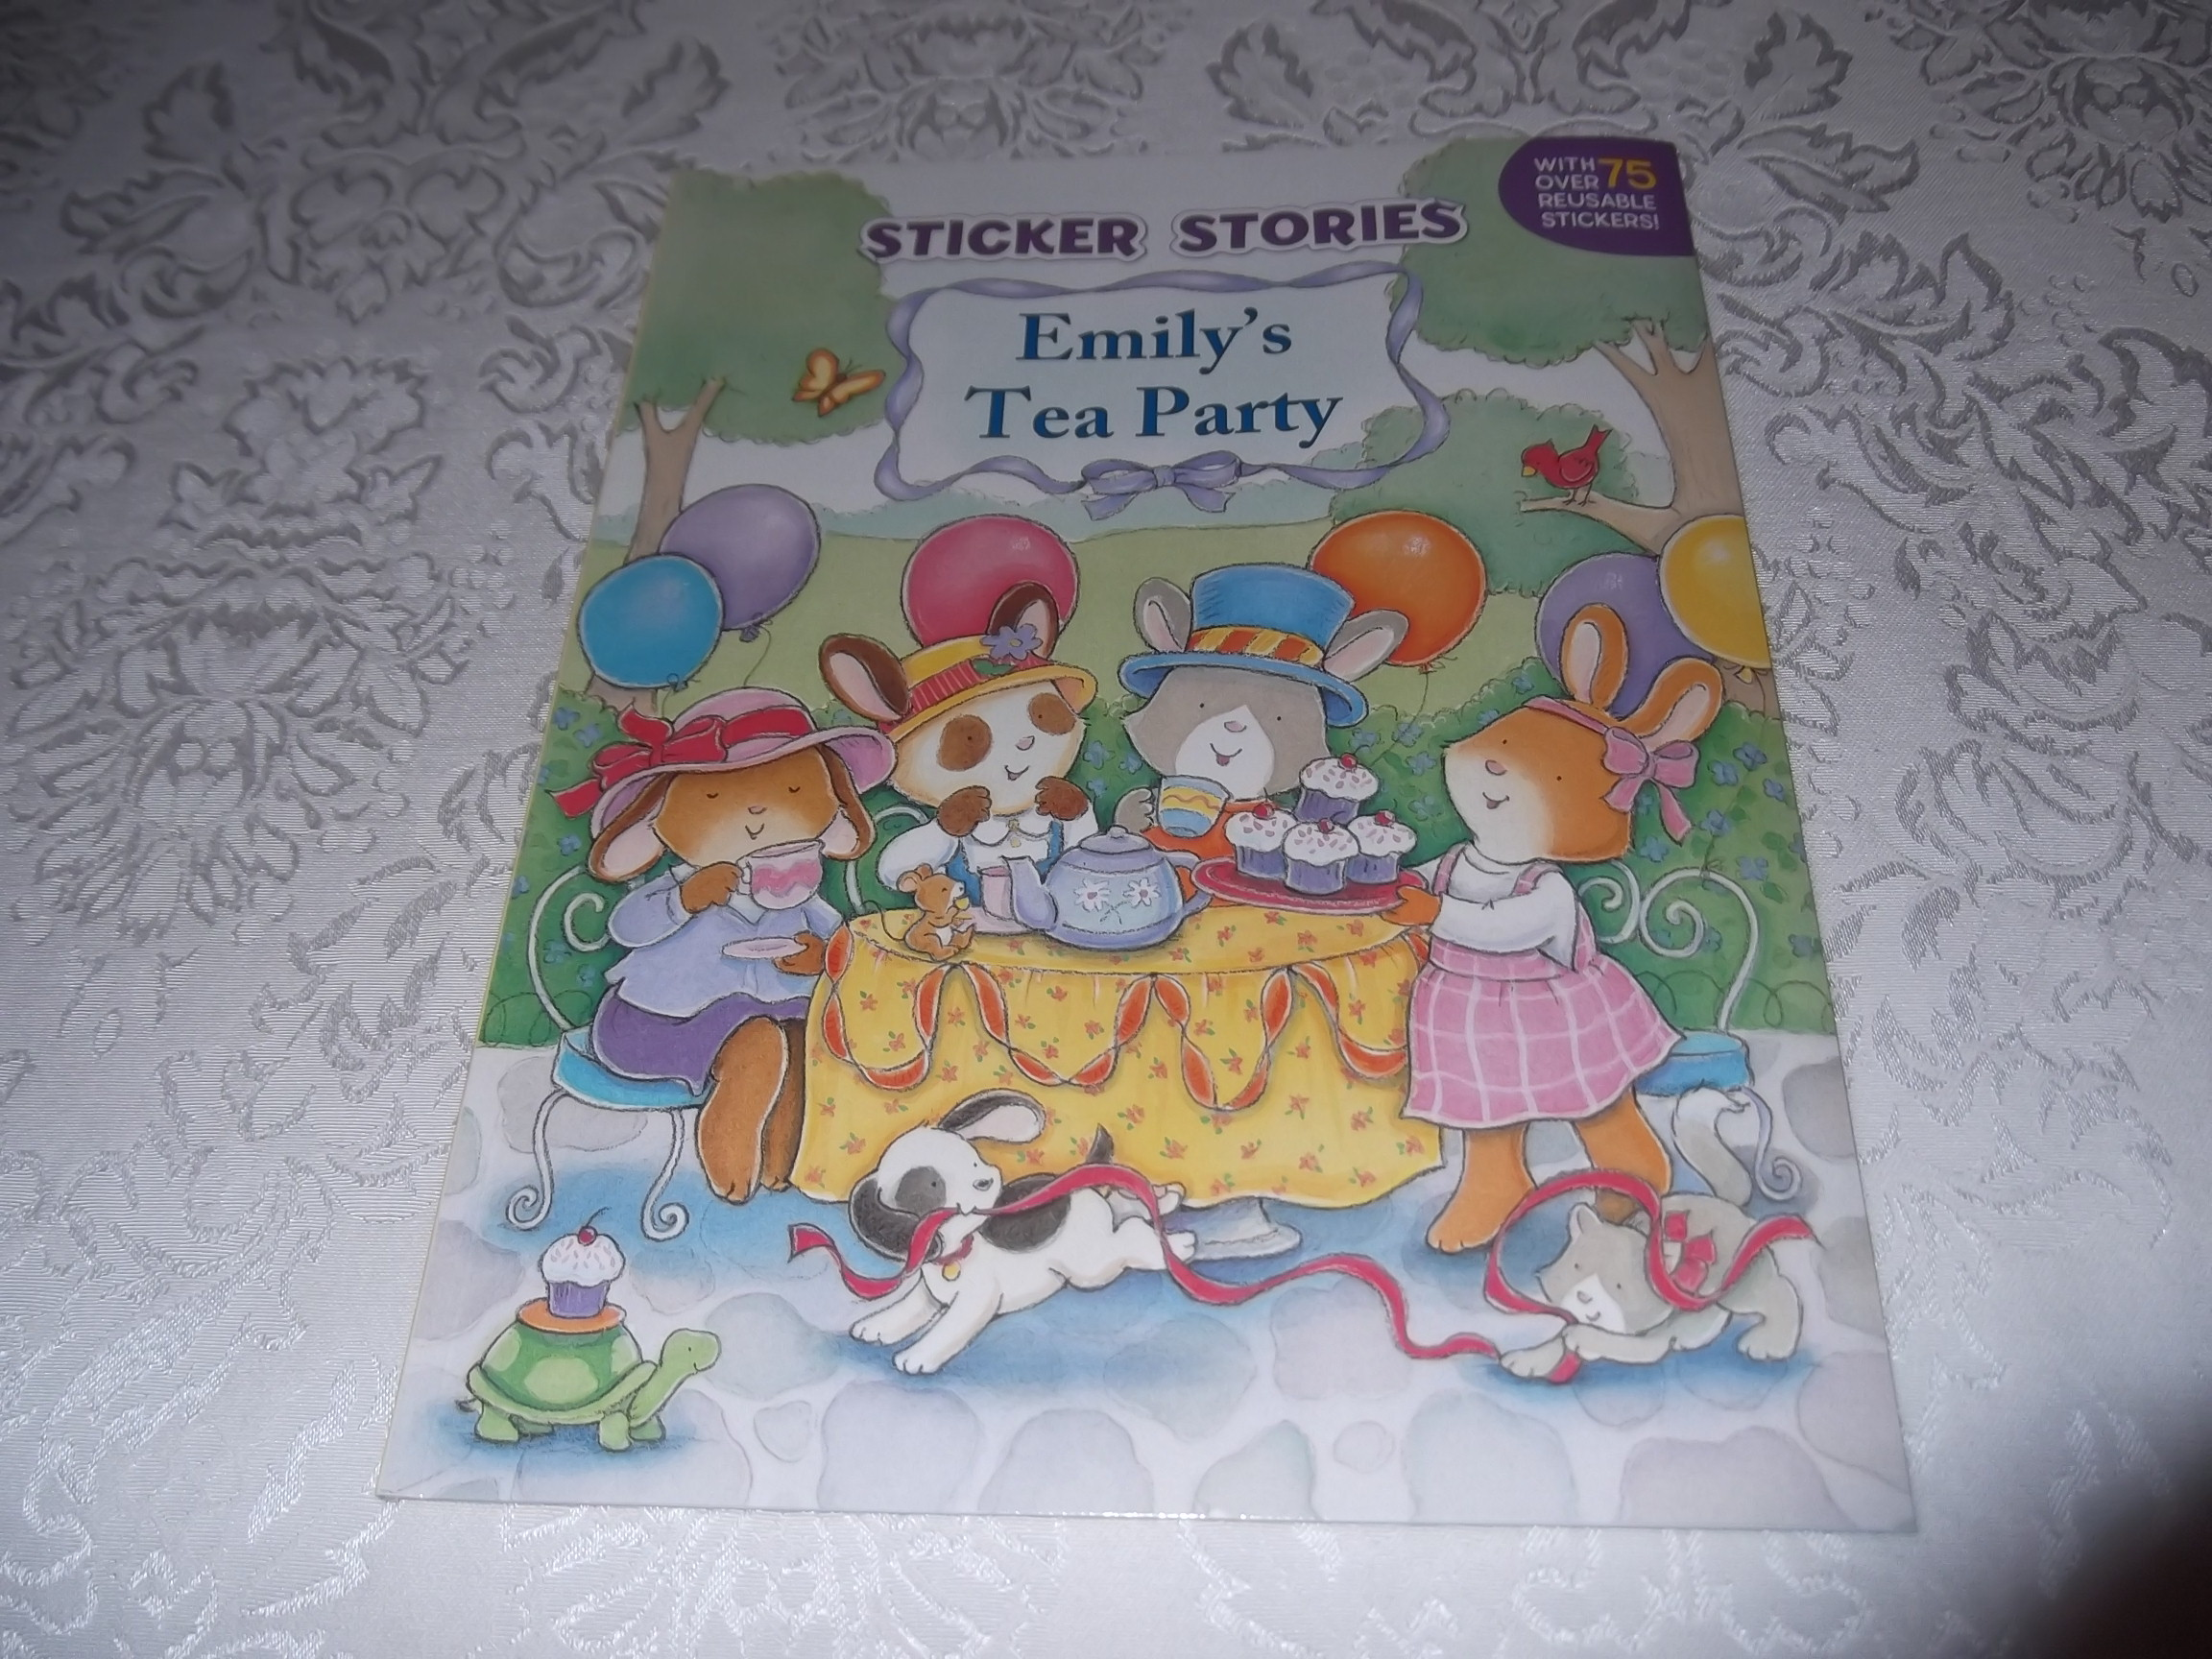 Emily's Tea Party Sticker Stories Claire Masurel Brand New with 75+ Stickers